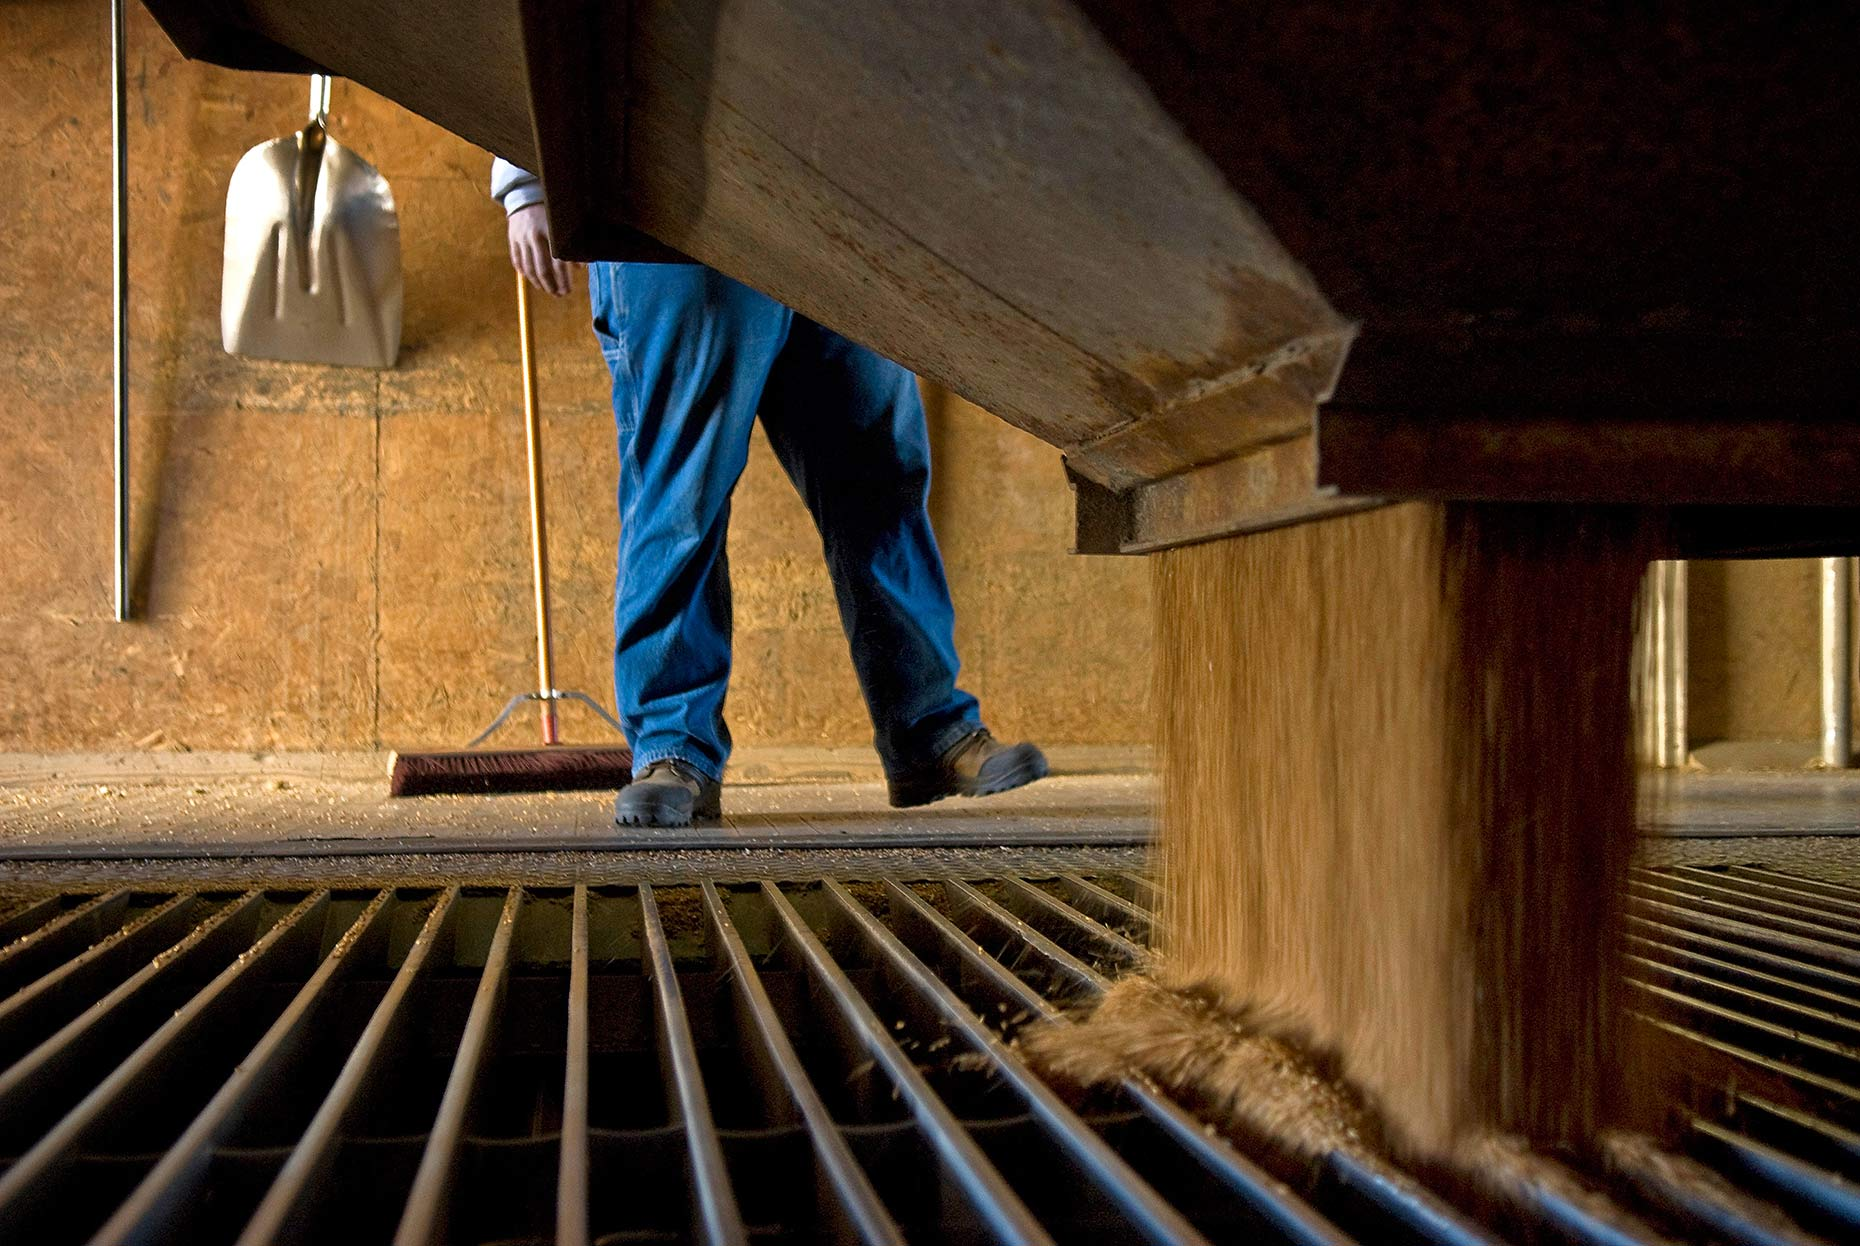 A photo of a farmer in a grain elevator by Fargo, North Dakota photojournalist Dan Koeck